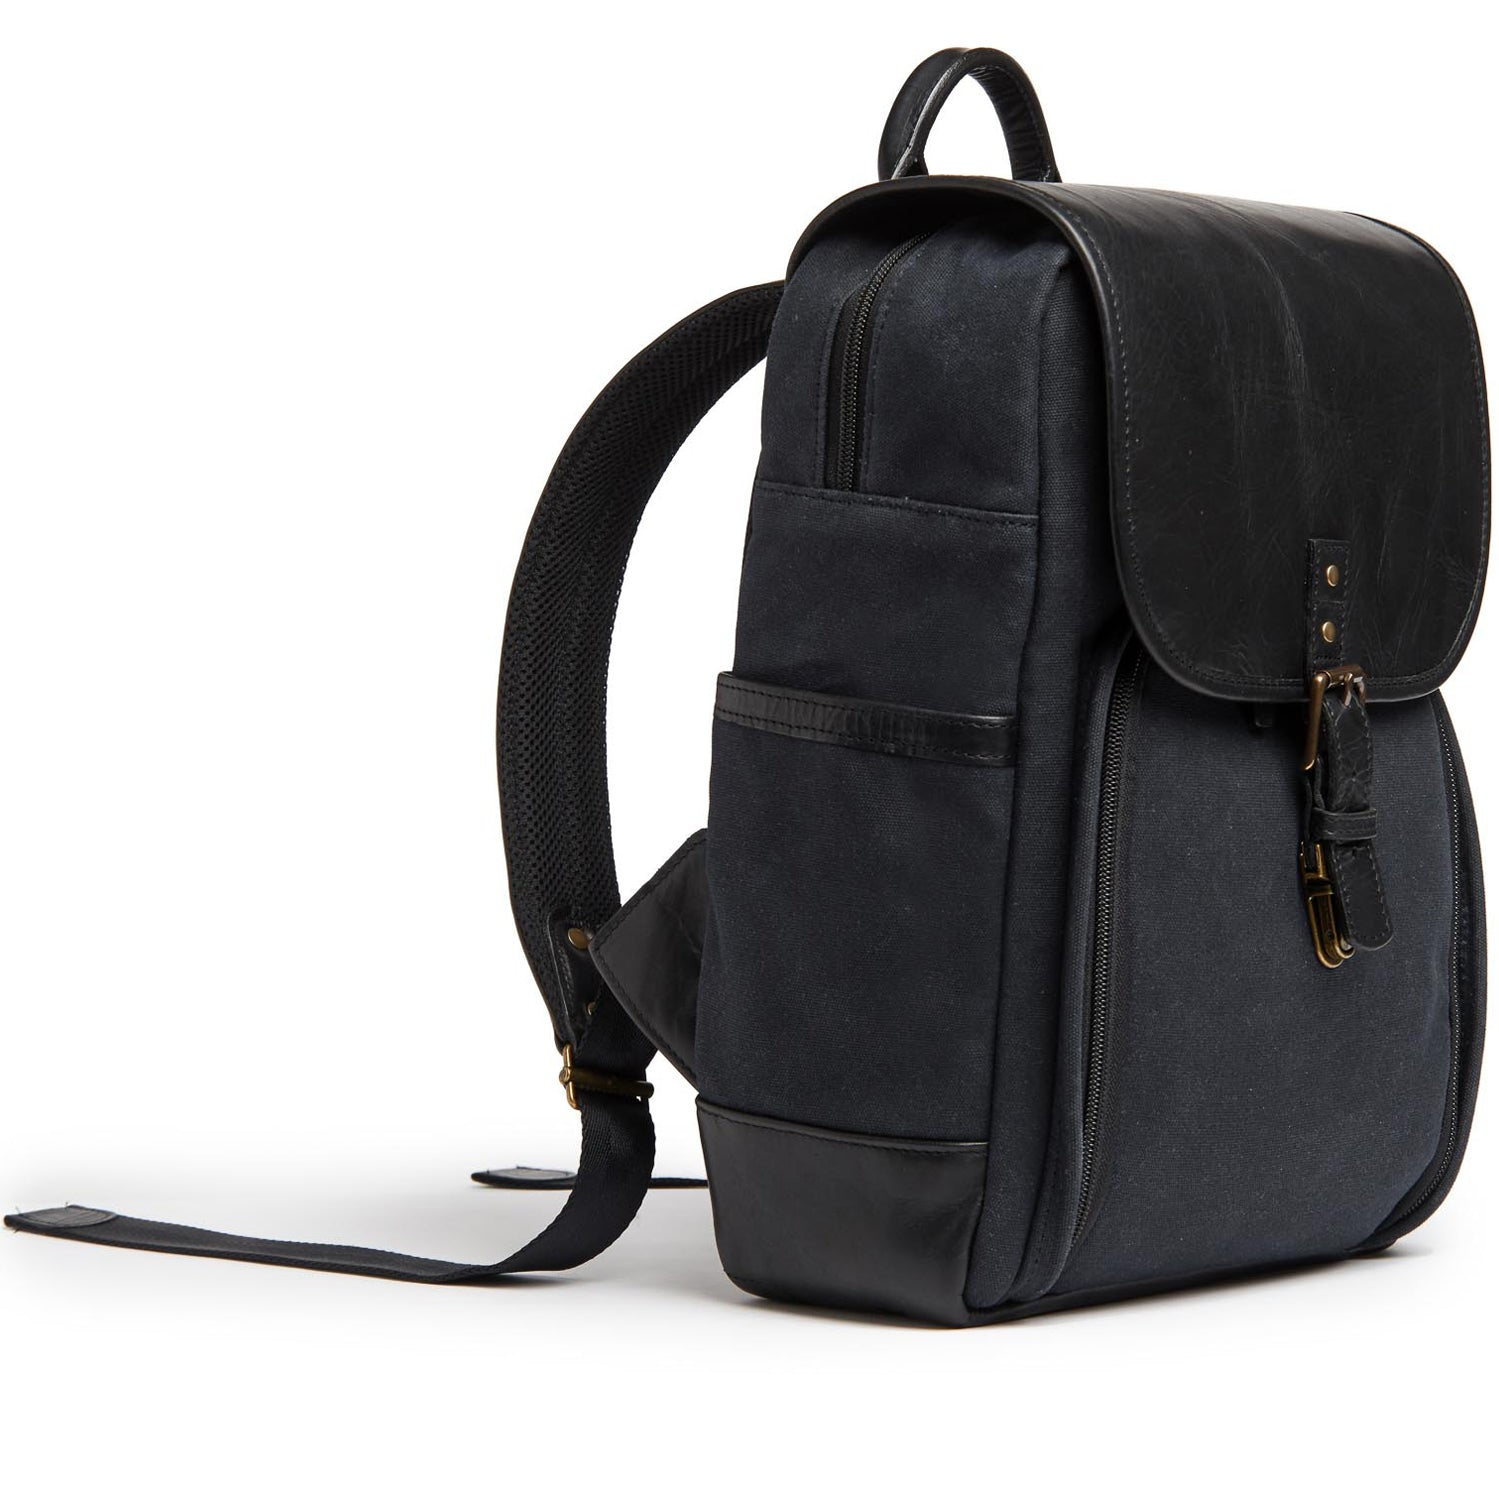 ONA Monterey Canvas/Leather Backpack - Black/Black